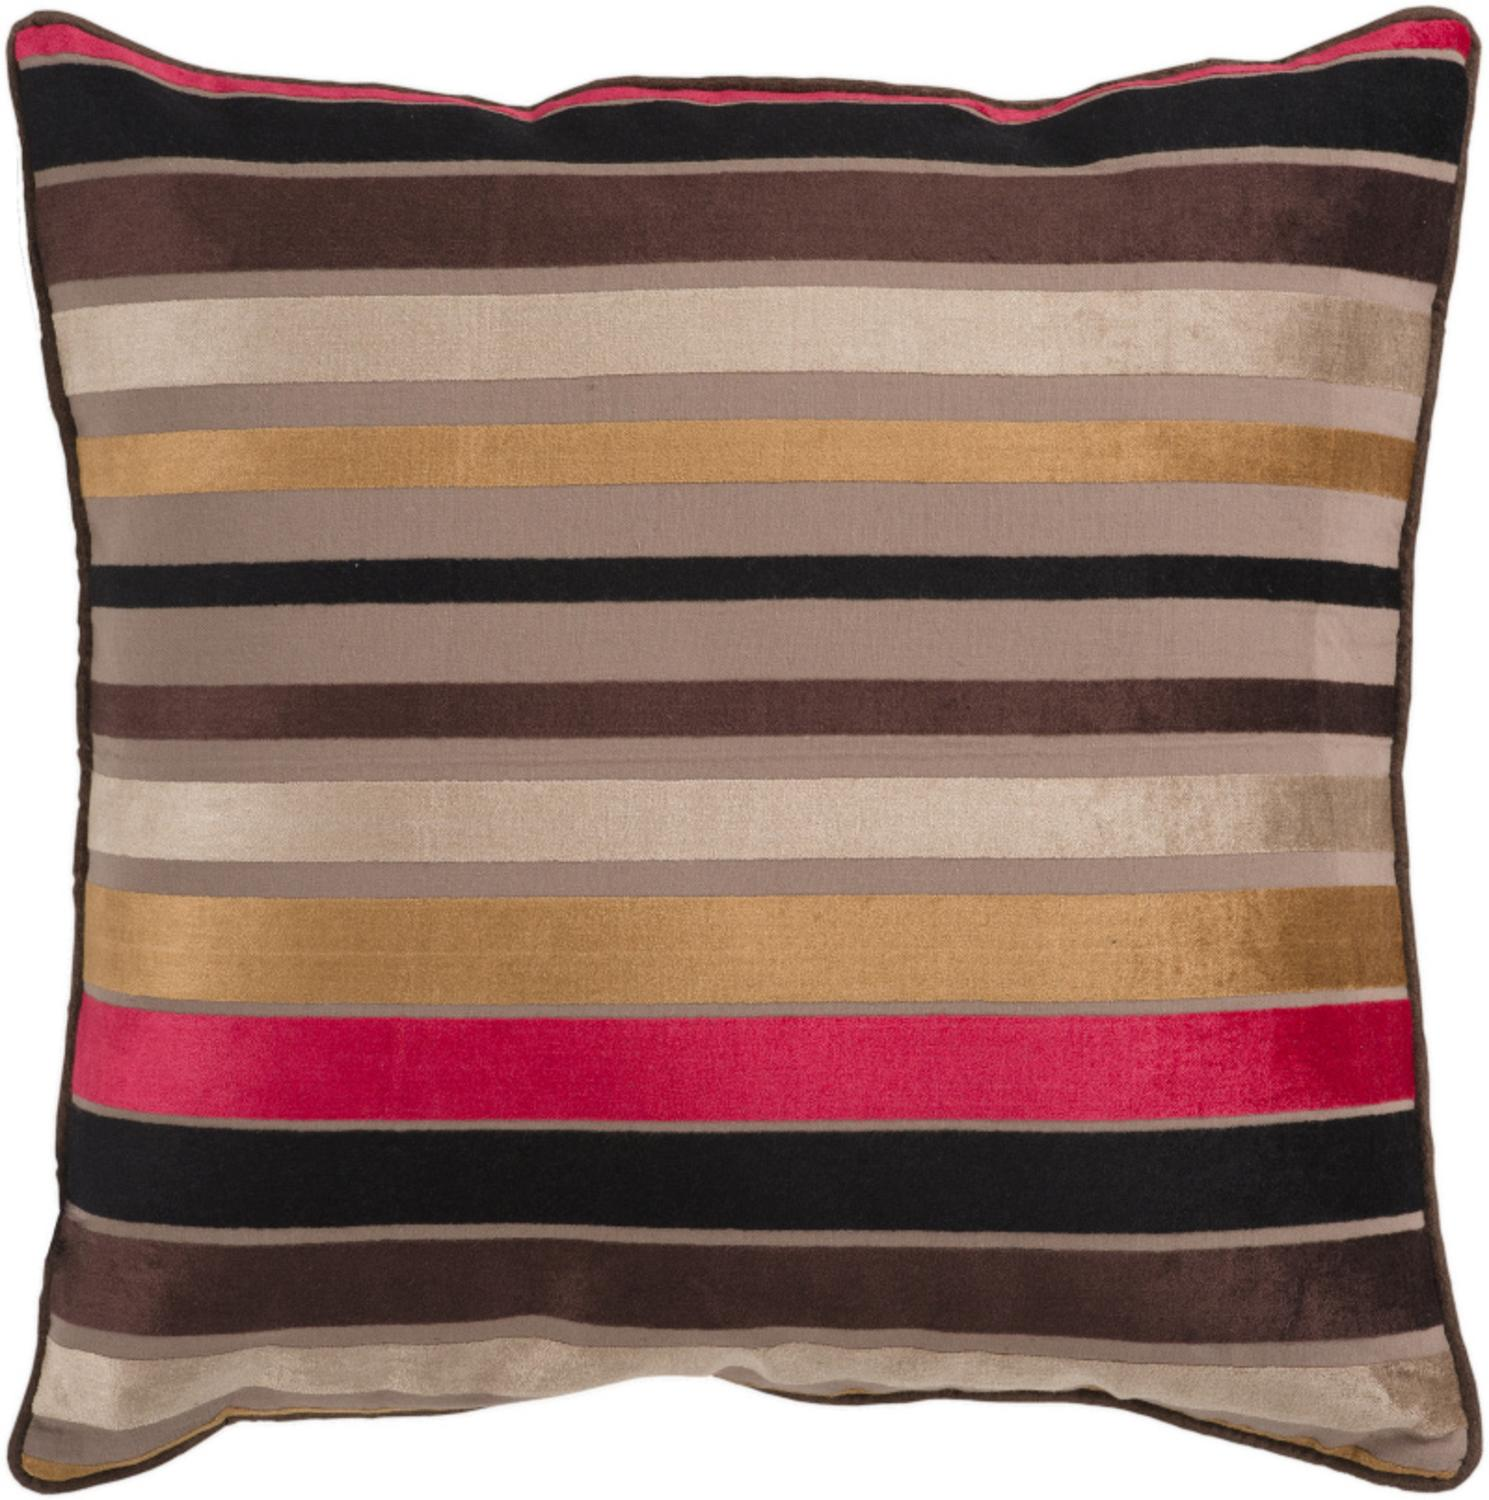 "18"" Bright and Vibrant Brown and Gold Striped Decorative Throw Pillow"